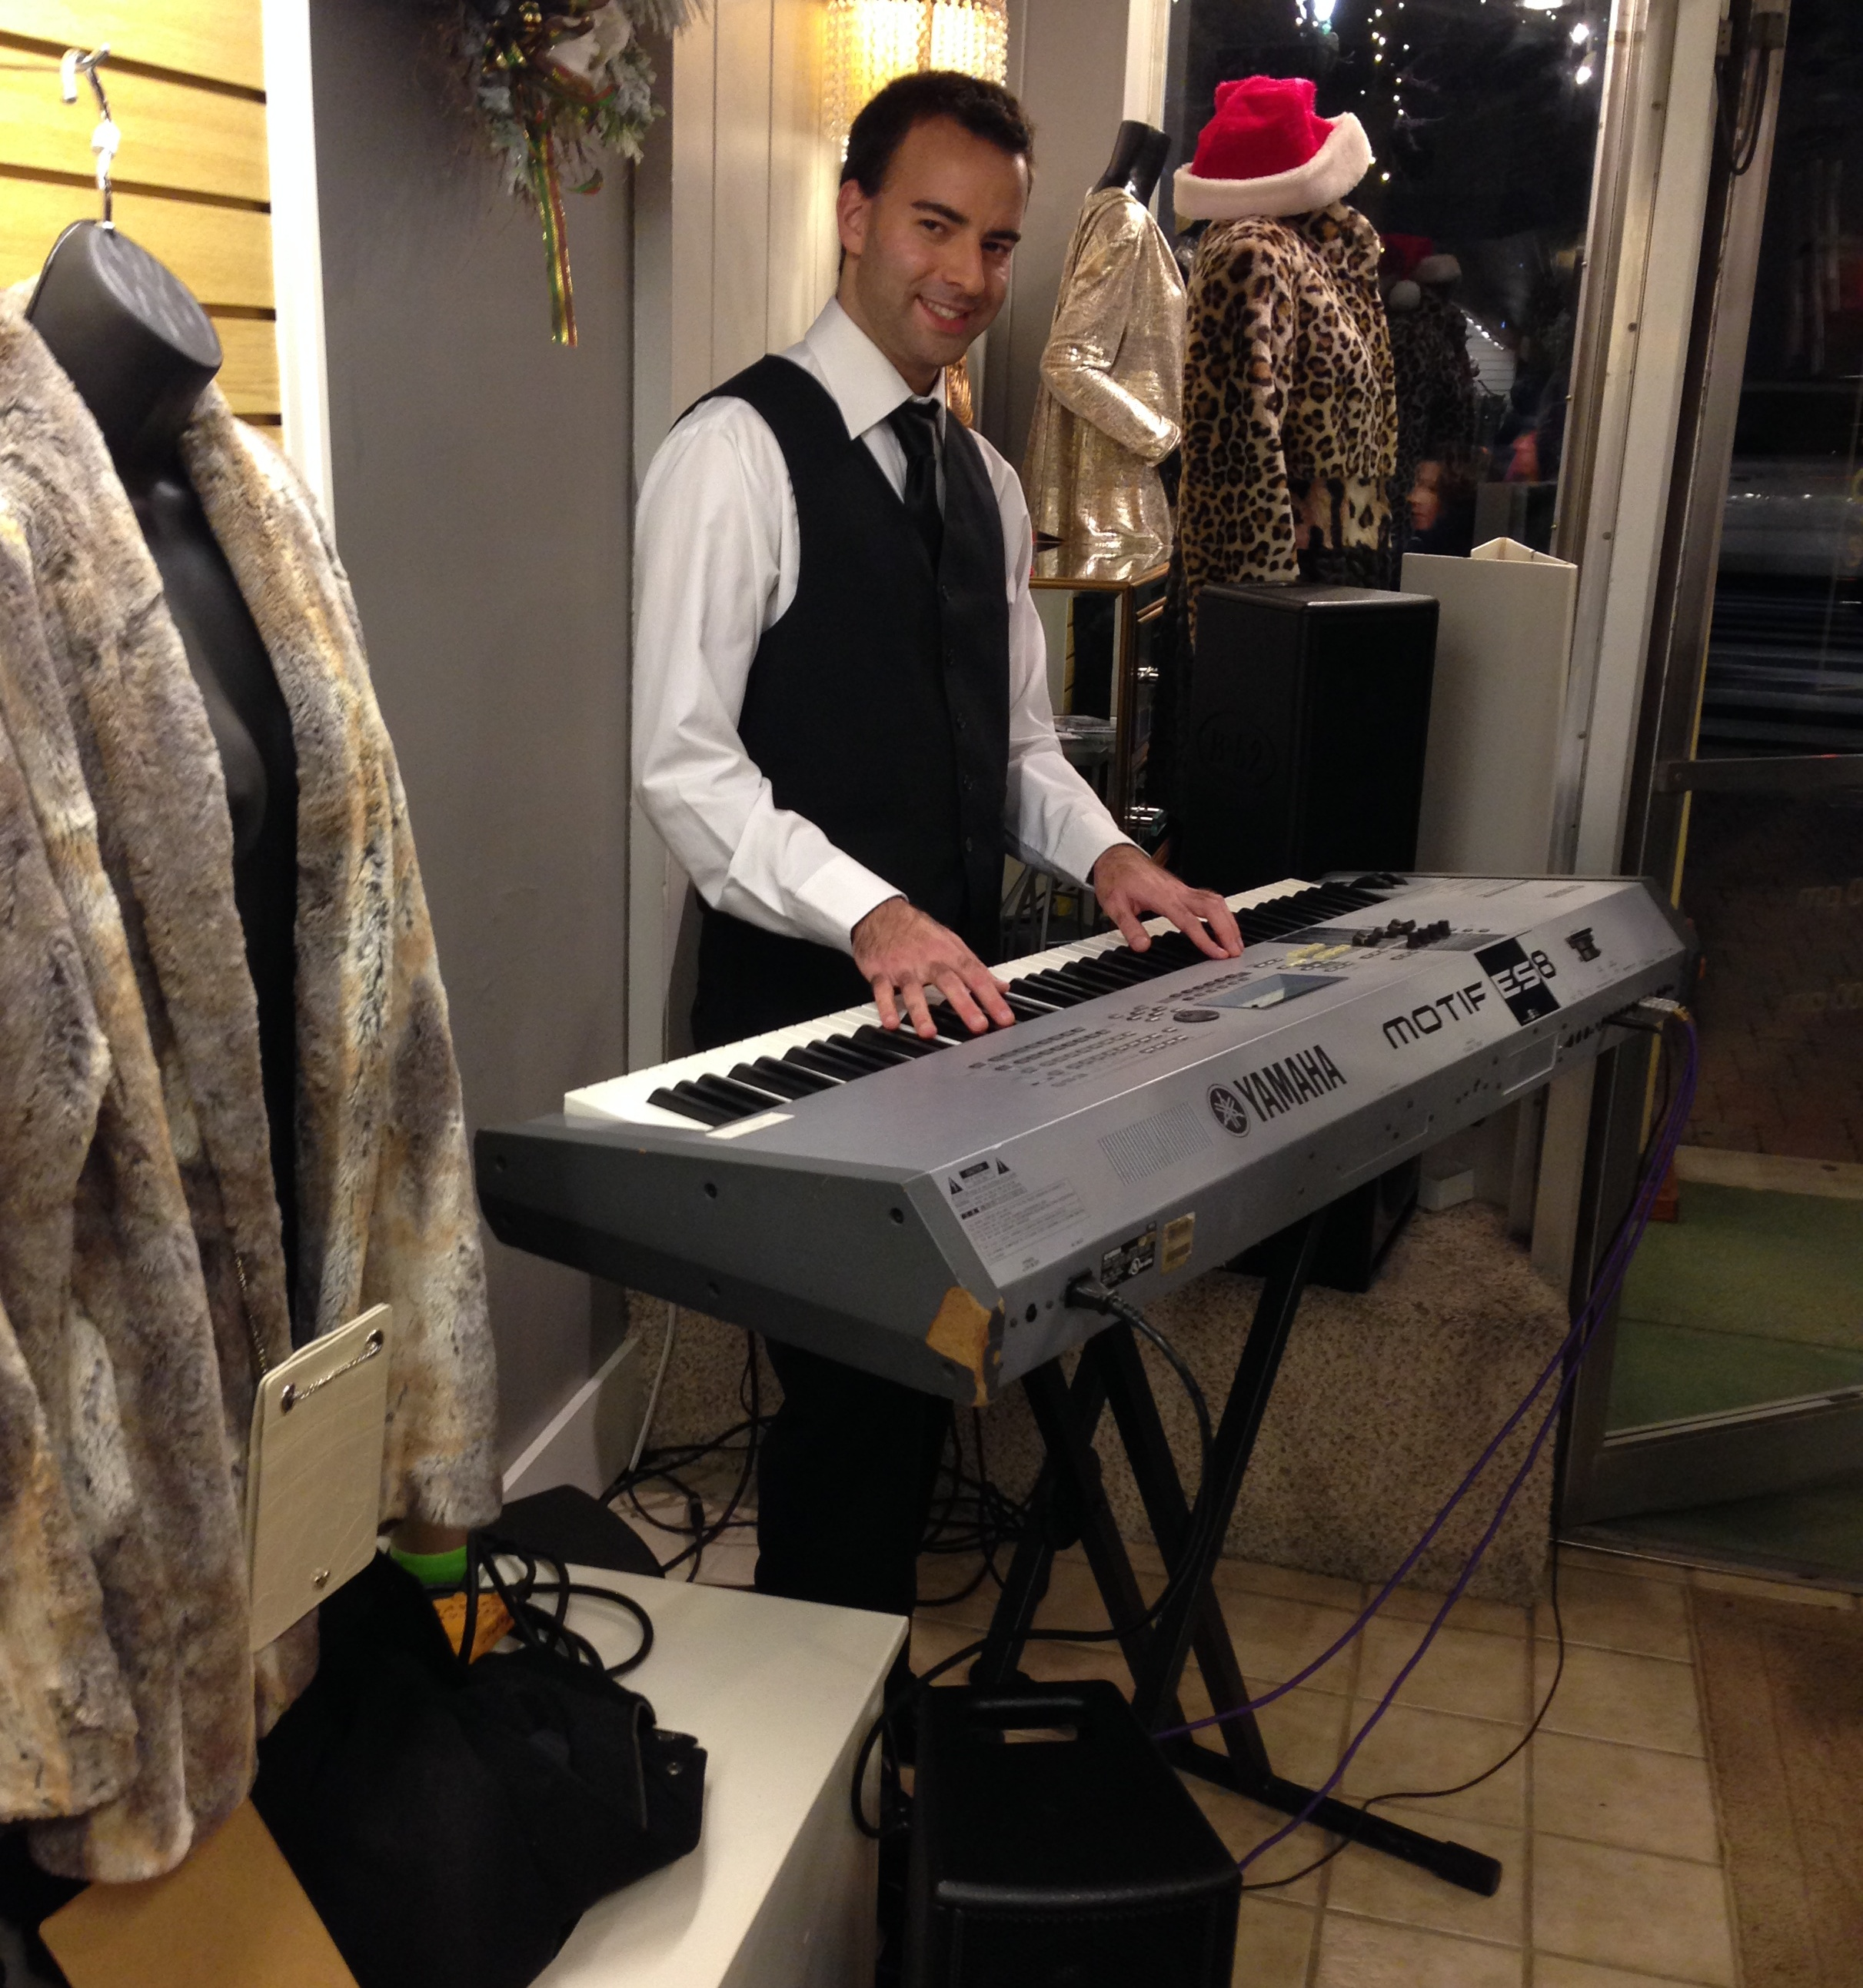 keenan-baxter-performs-christmas-music-at-holly-days-valparaiso